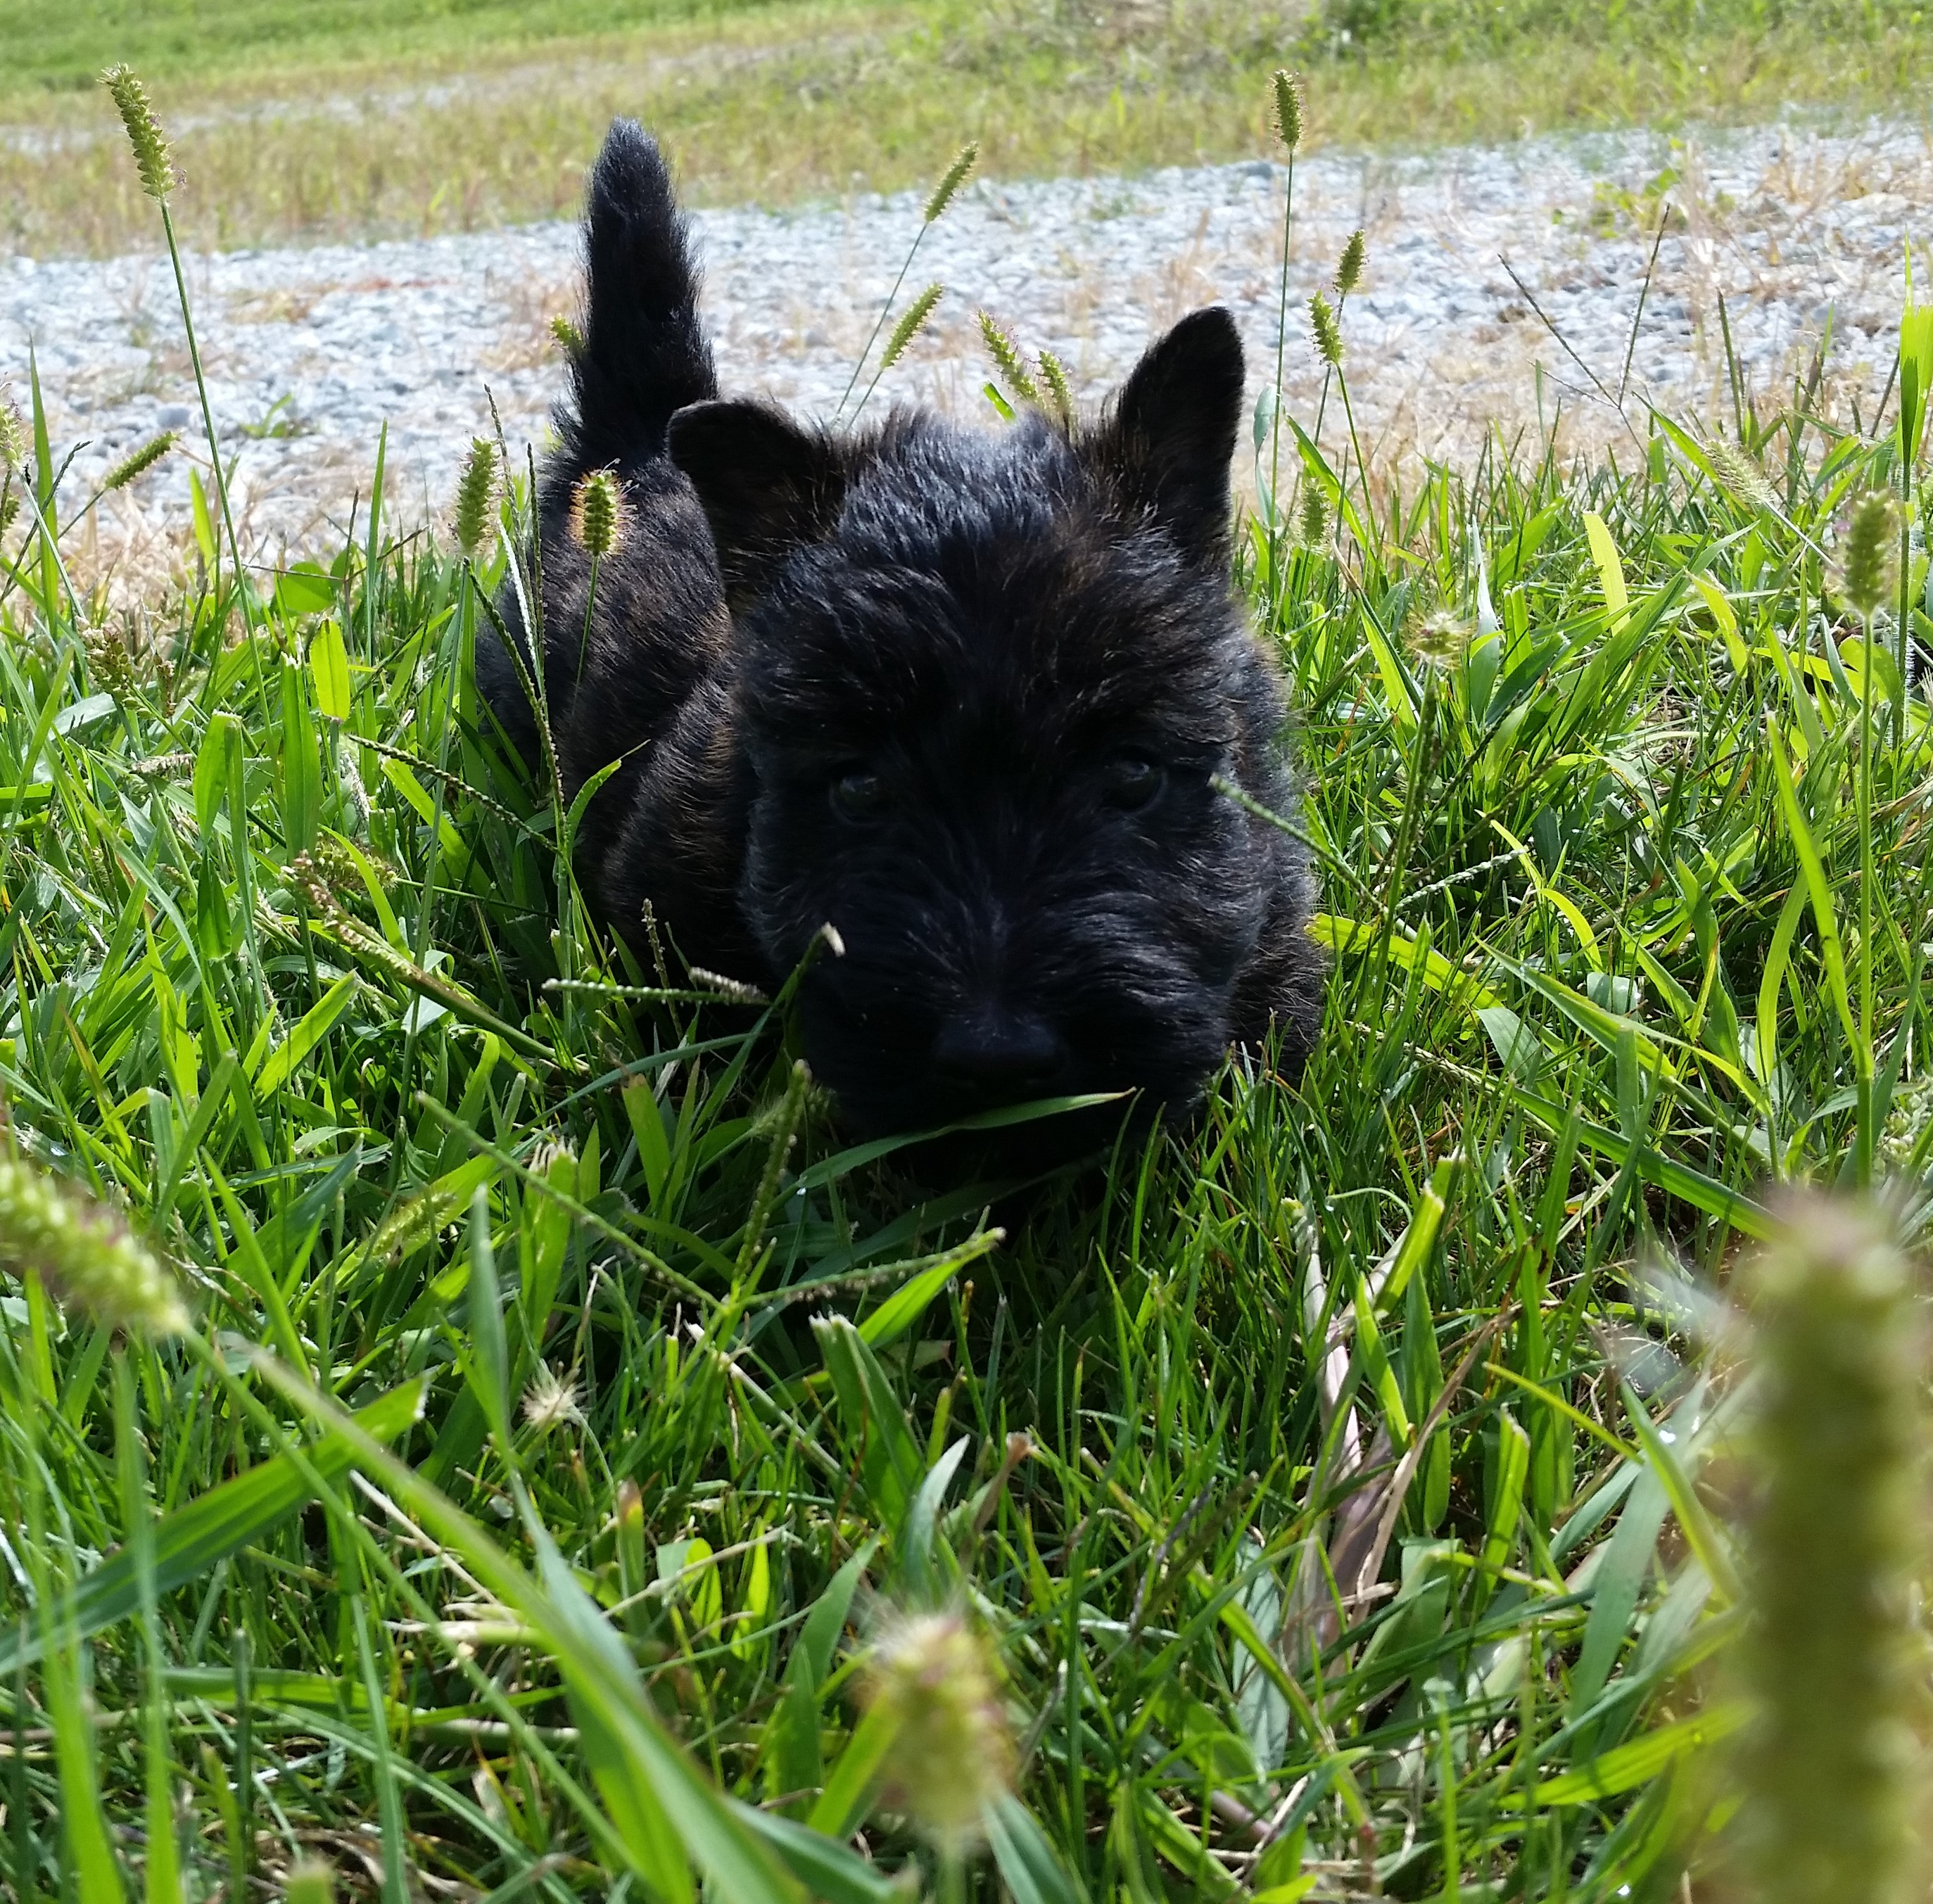 Moira's Puppies. This is Wallace in the grass